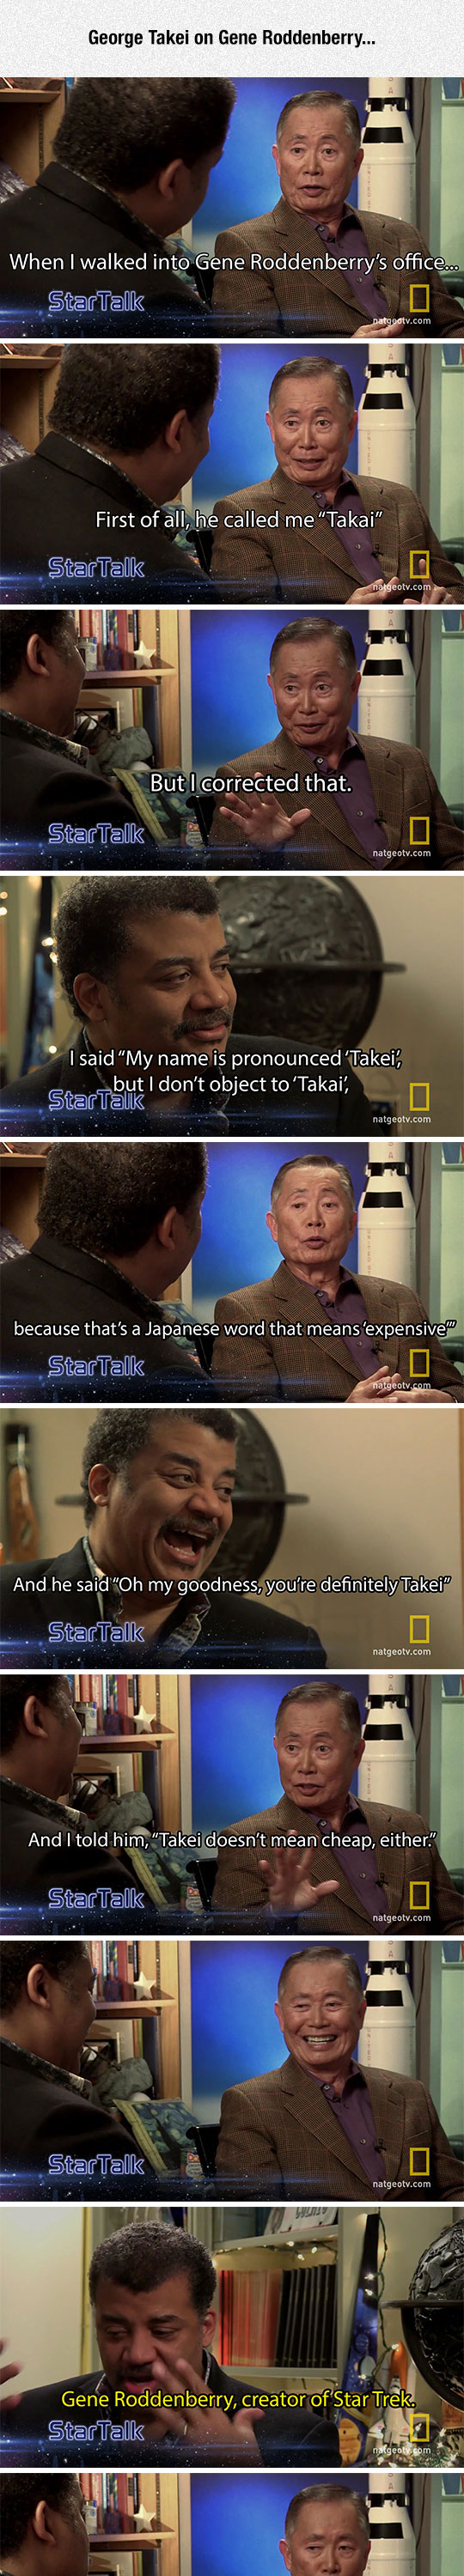 1-funny-george-takei-interview-star-trek